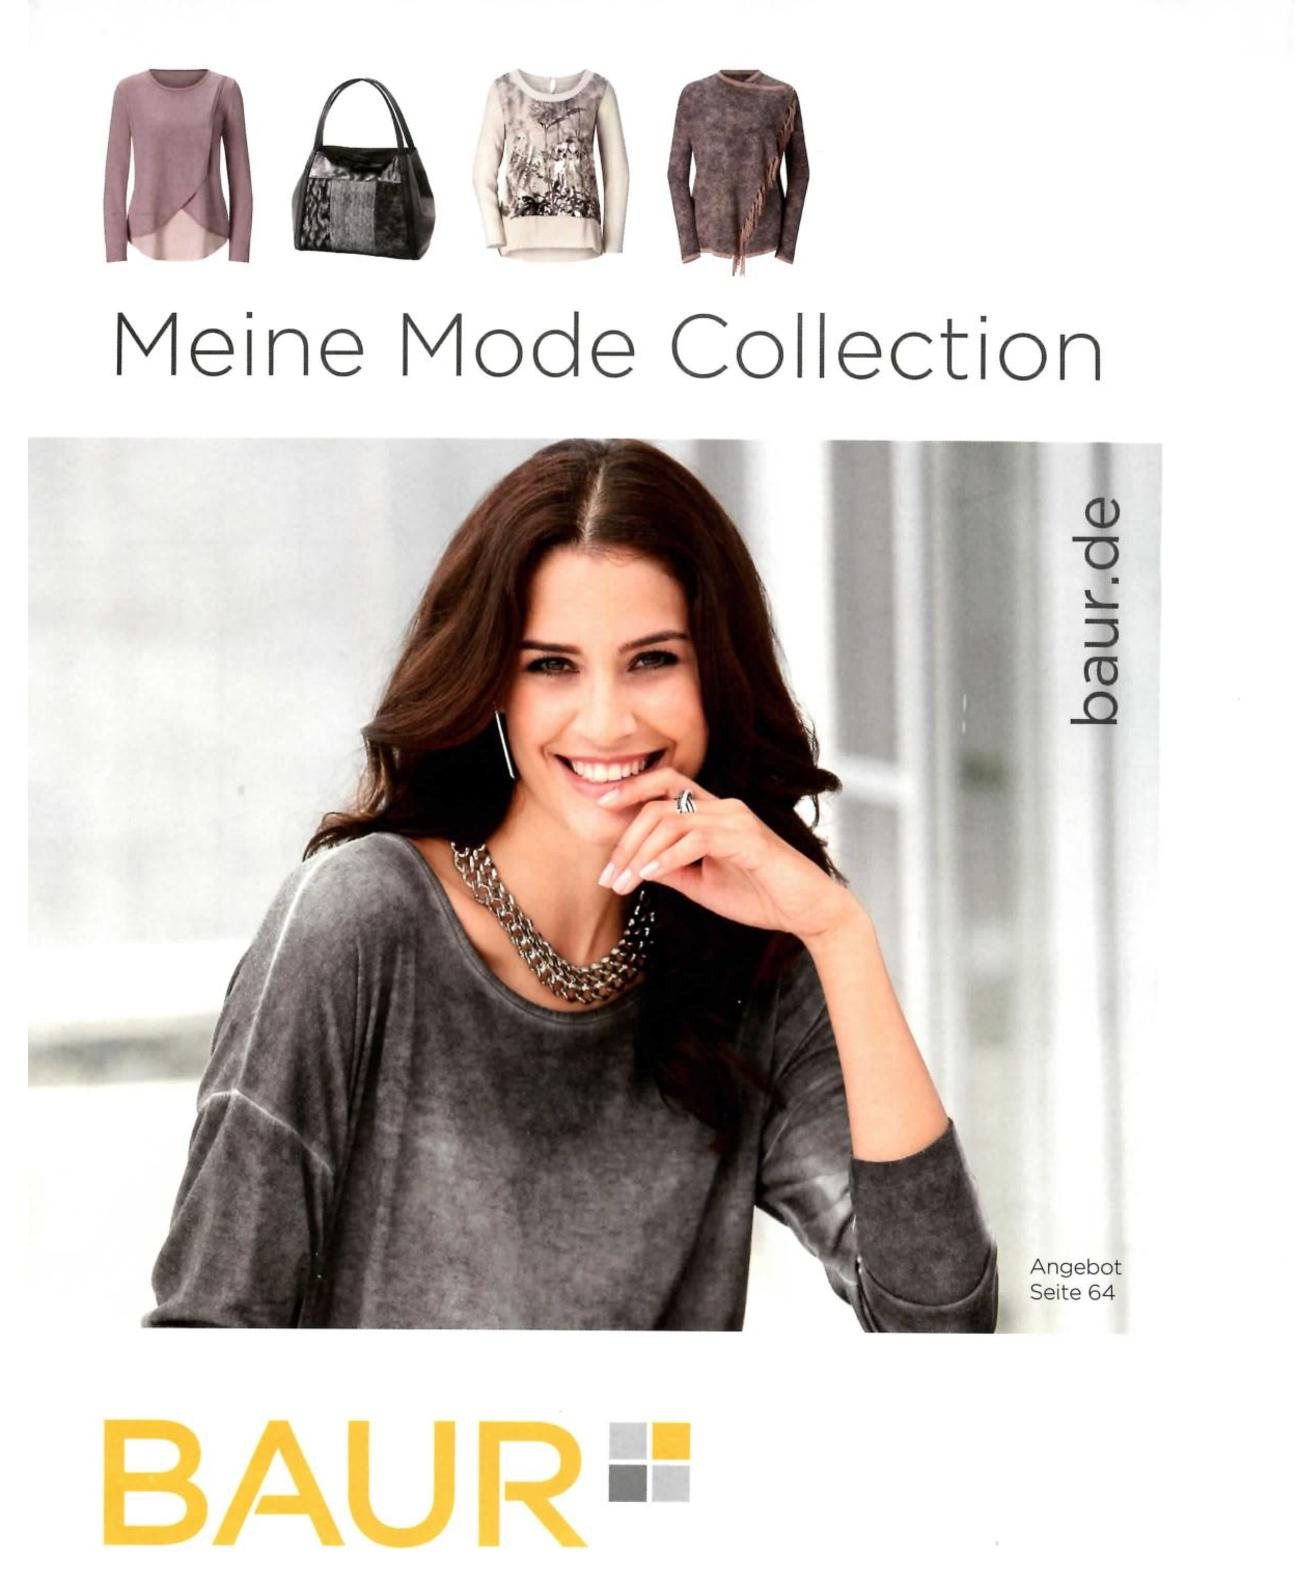 Calaméo - Baur Meine Mode Collection Hw18 1742a71e7aade